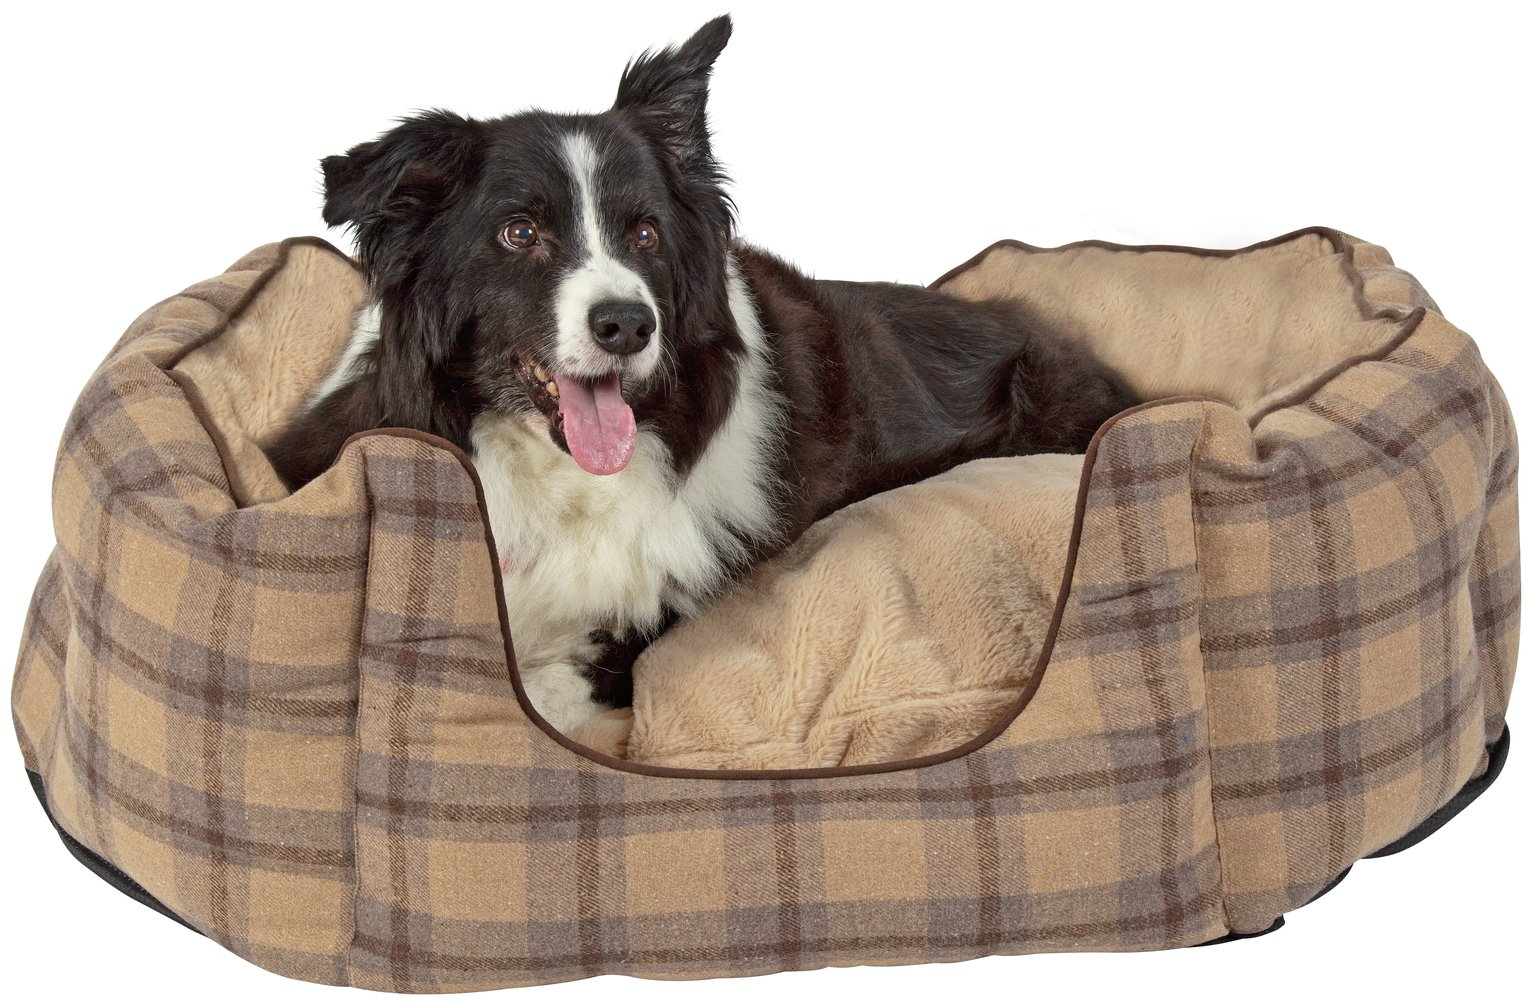 Pineham Memory Foam Oval Pet Bed - Medium